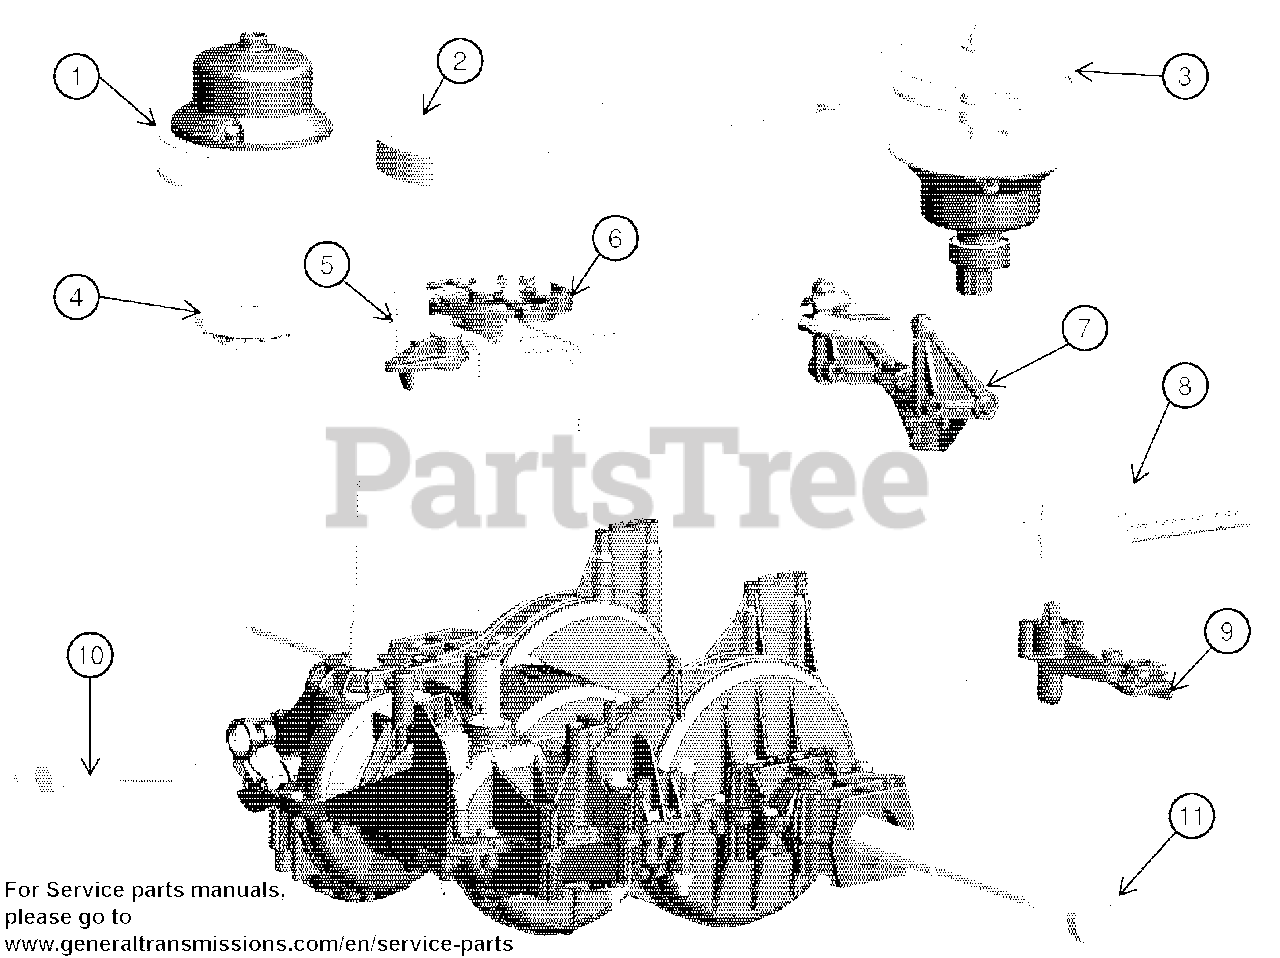 Ariens RS800-SD-P (21548469) - Ariens General Transmission Transmission -  580486201 Parts Lookup with Diagrams | PartsTreePartsTree